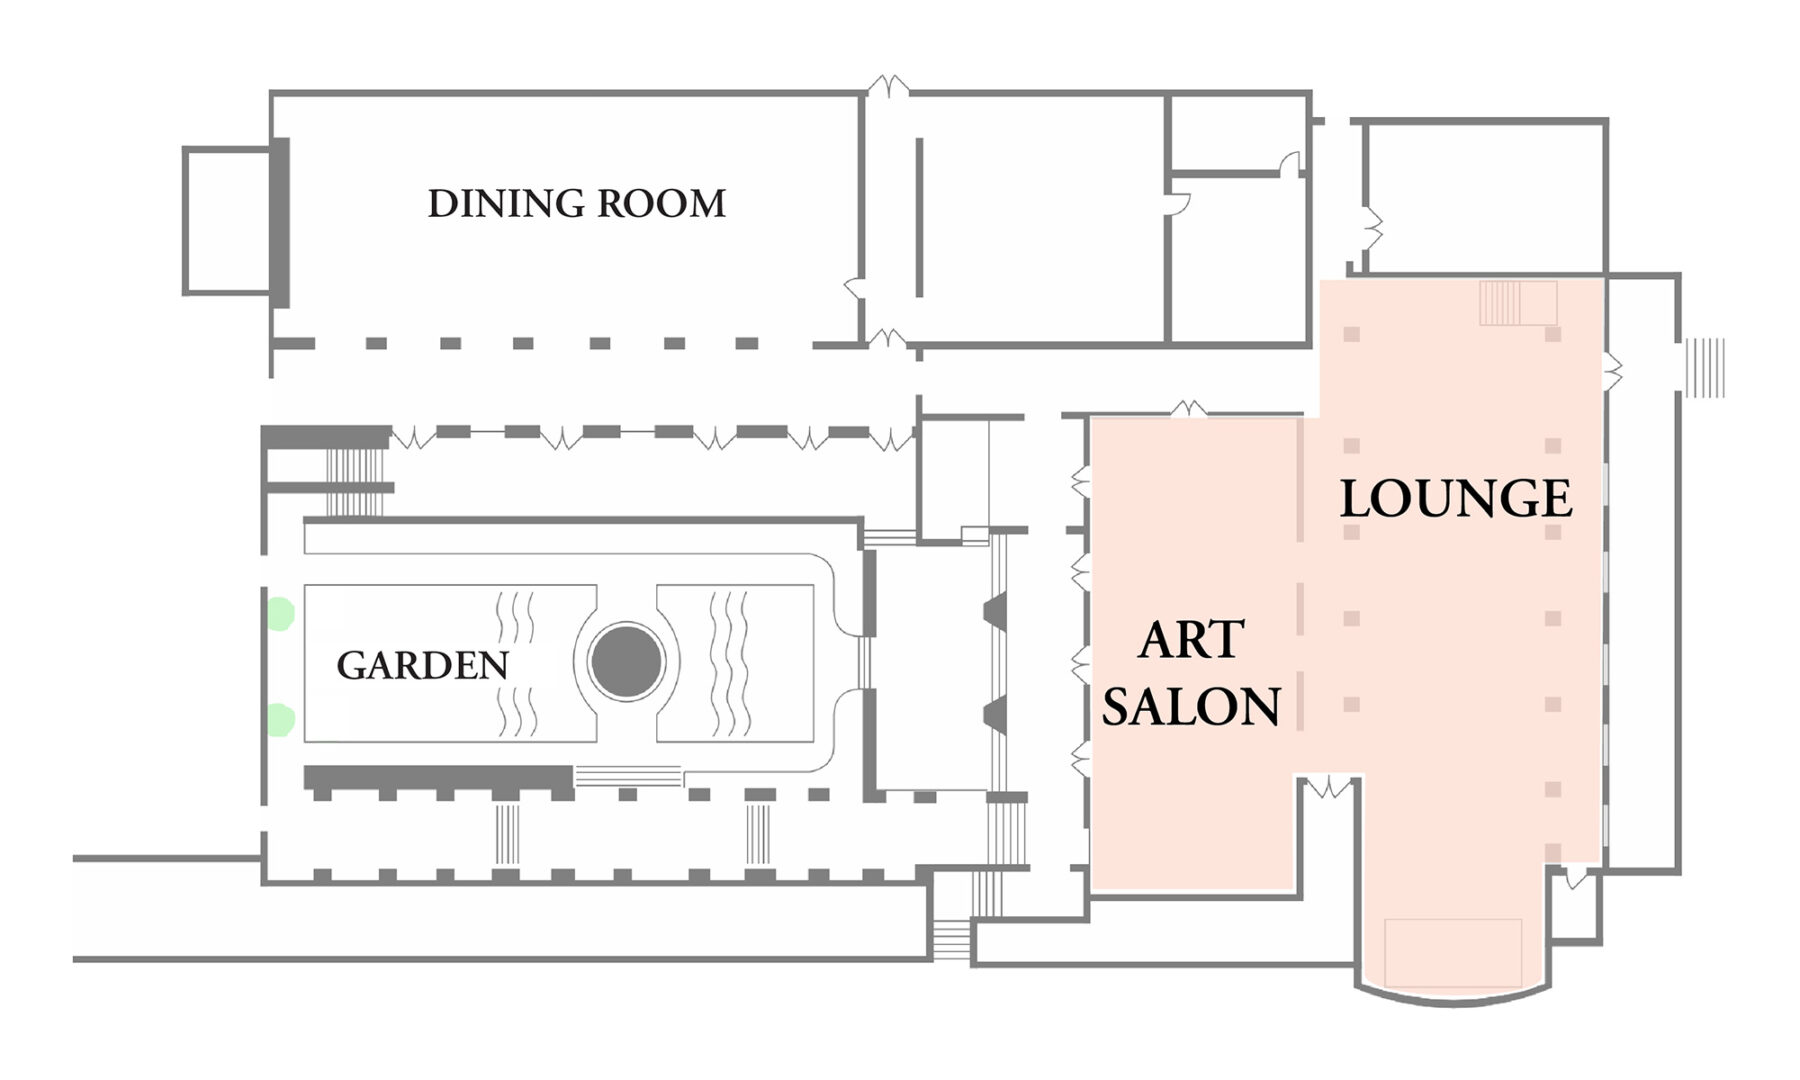 Ebell Club Floor Plan. Art Salon and Lounge